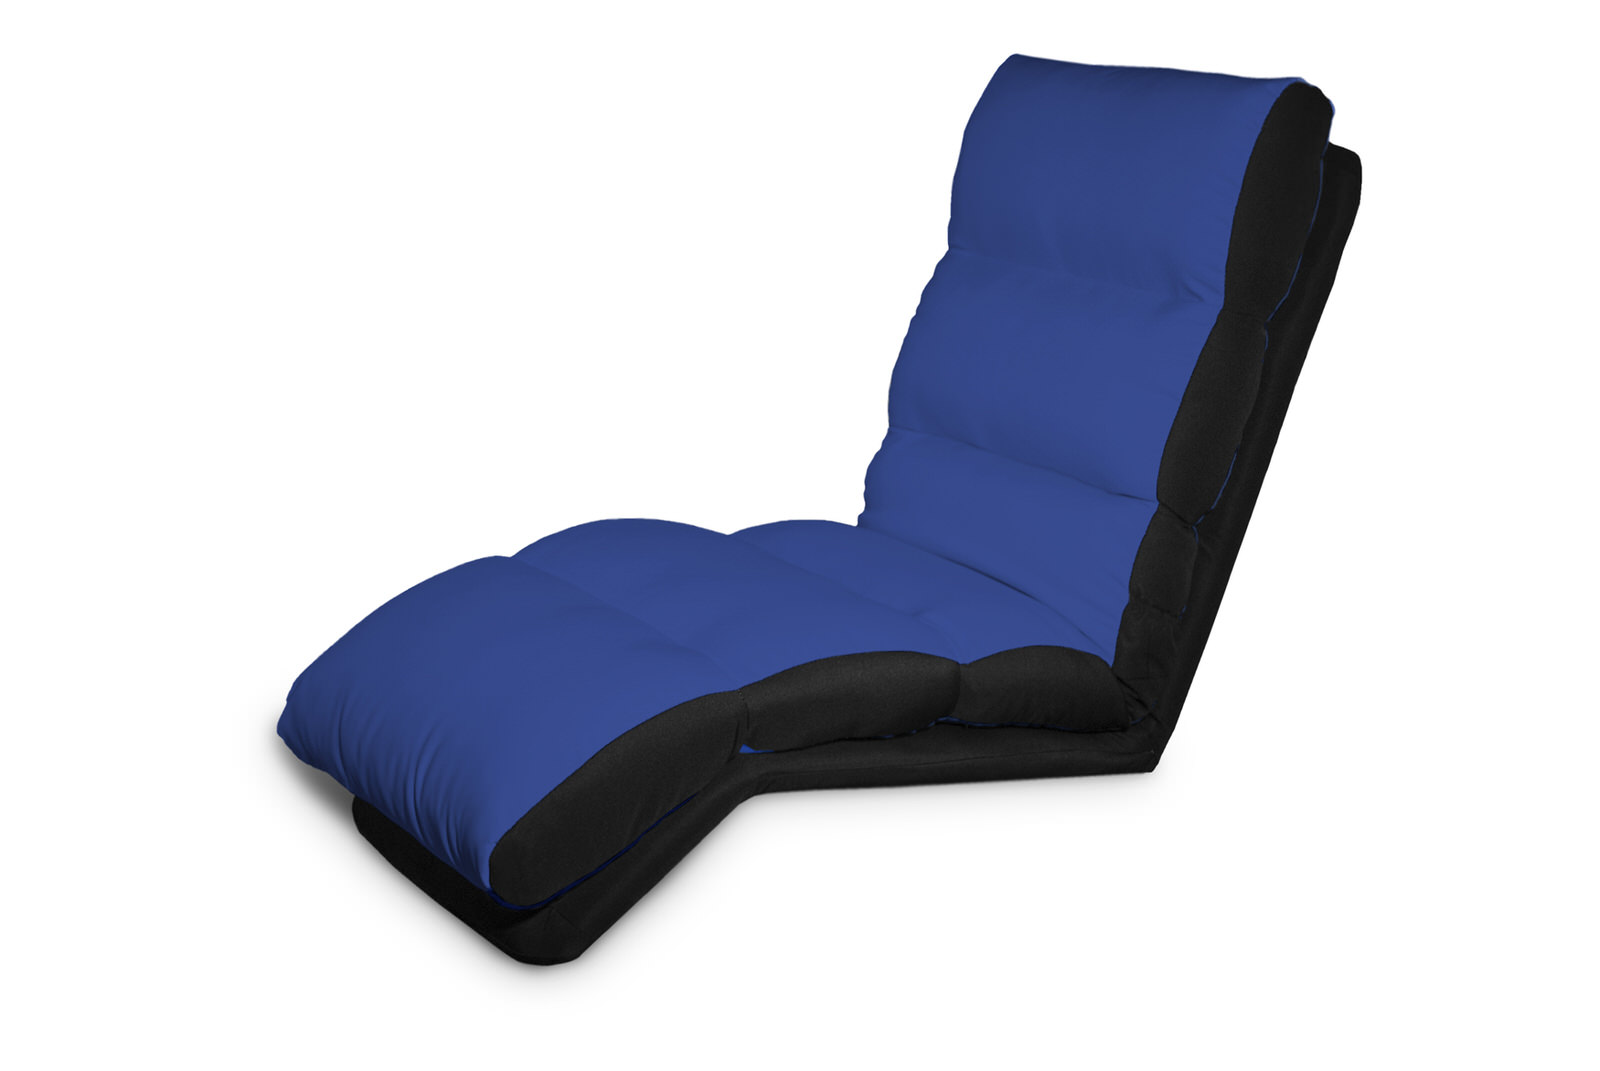 Turbo Lounger Convertible Chair Bed Blue by Serta Lifestyle